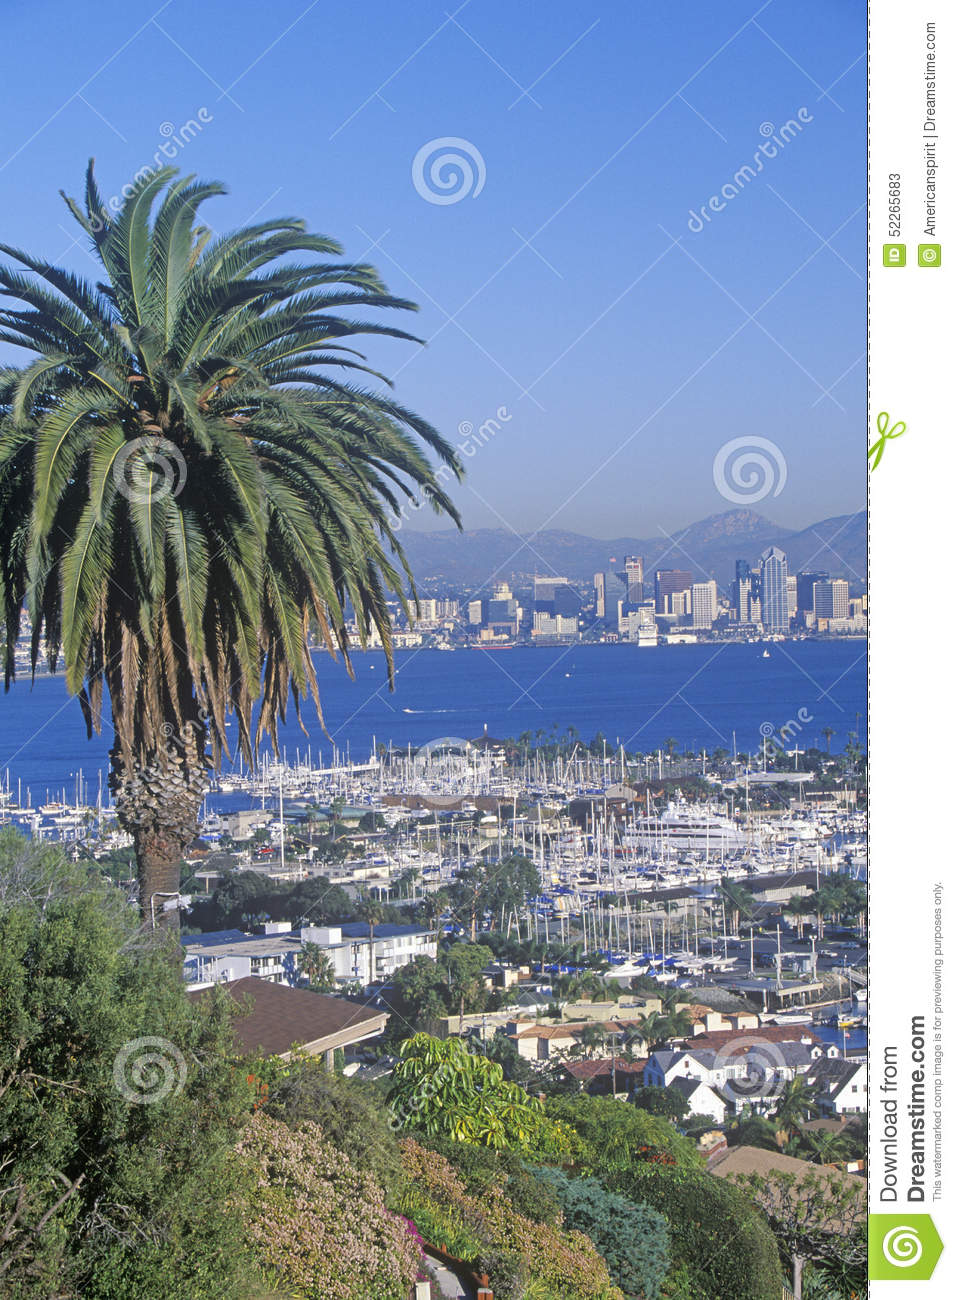 San Diego skyline and harbor, view from Shelter Island, San Diego, California